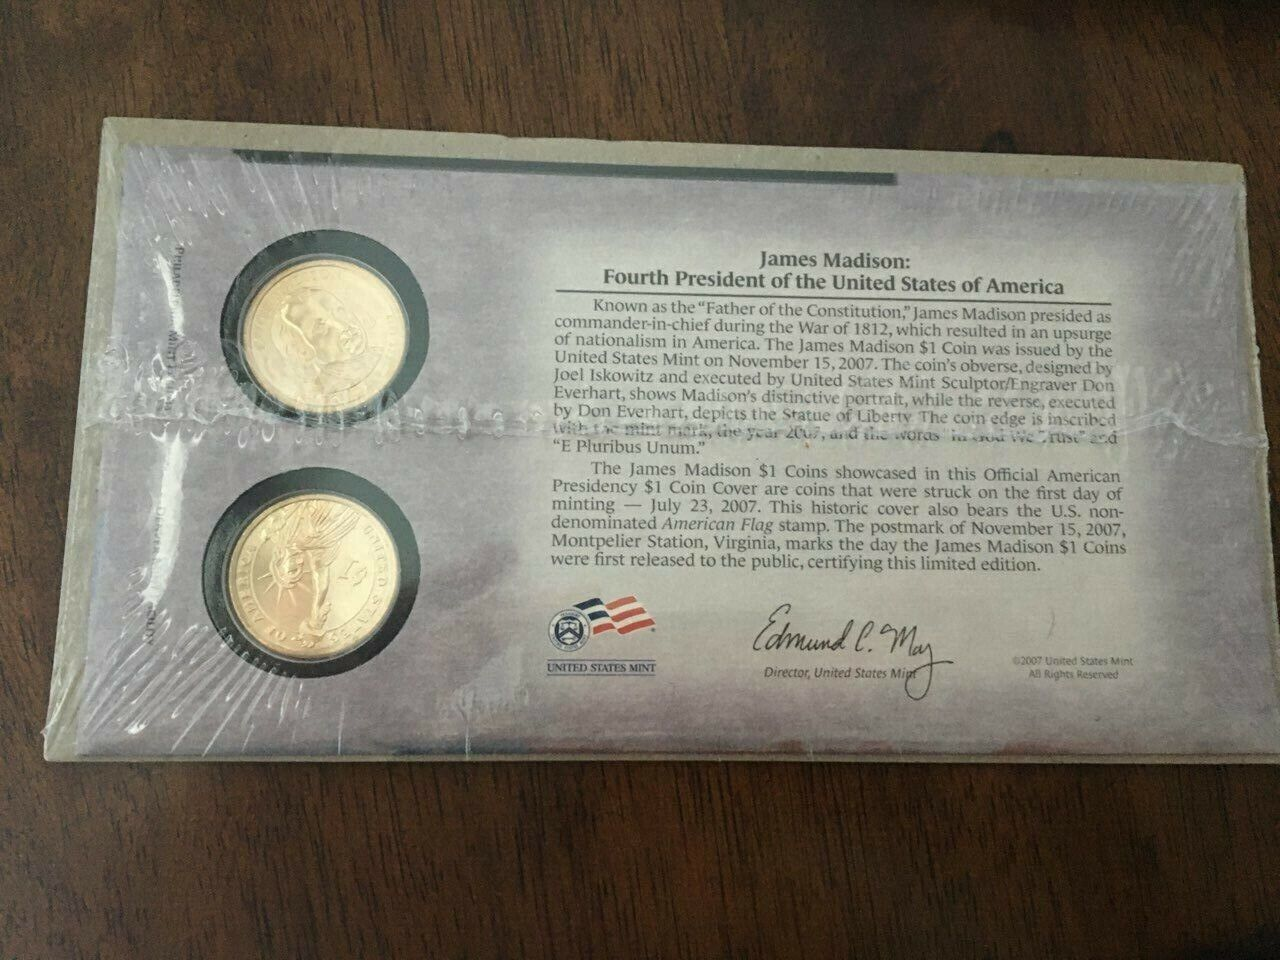 BNIP UNITED STATES MINT FIRST DAY COVER 2007 JAMES MADISON DOLLAR COIN SET - $15.00